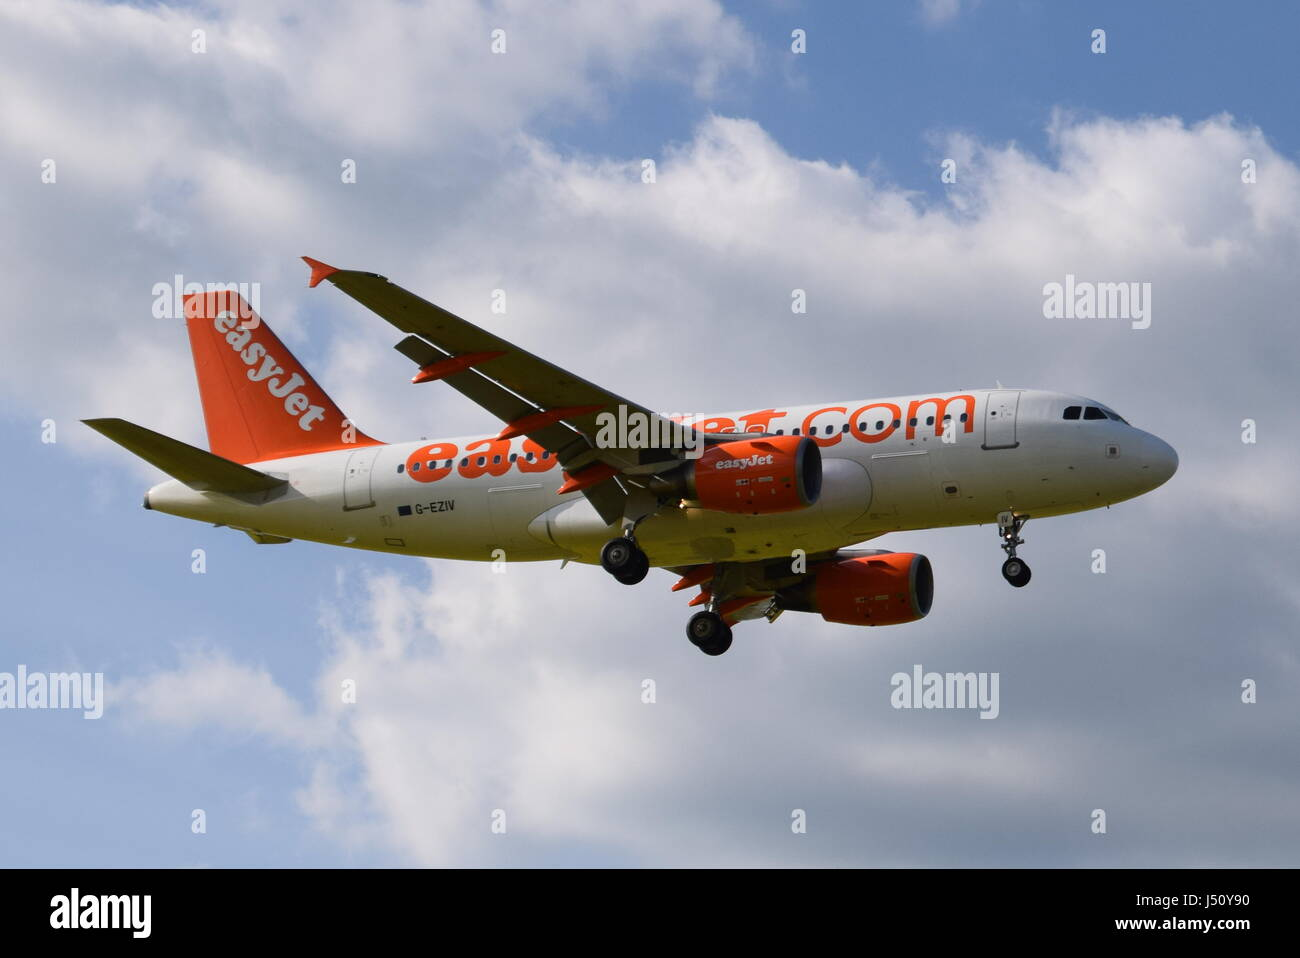 G-EZIV easyJet Airbus A319-100 - cn 2565 on final approach to LGW London Gatwick airport - Stock Image